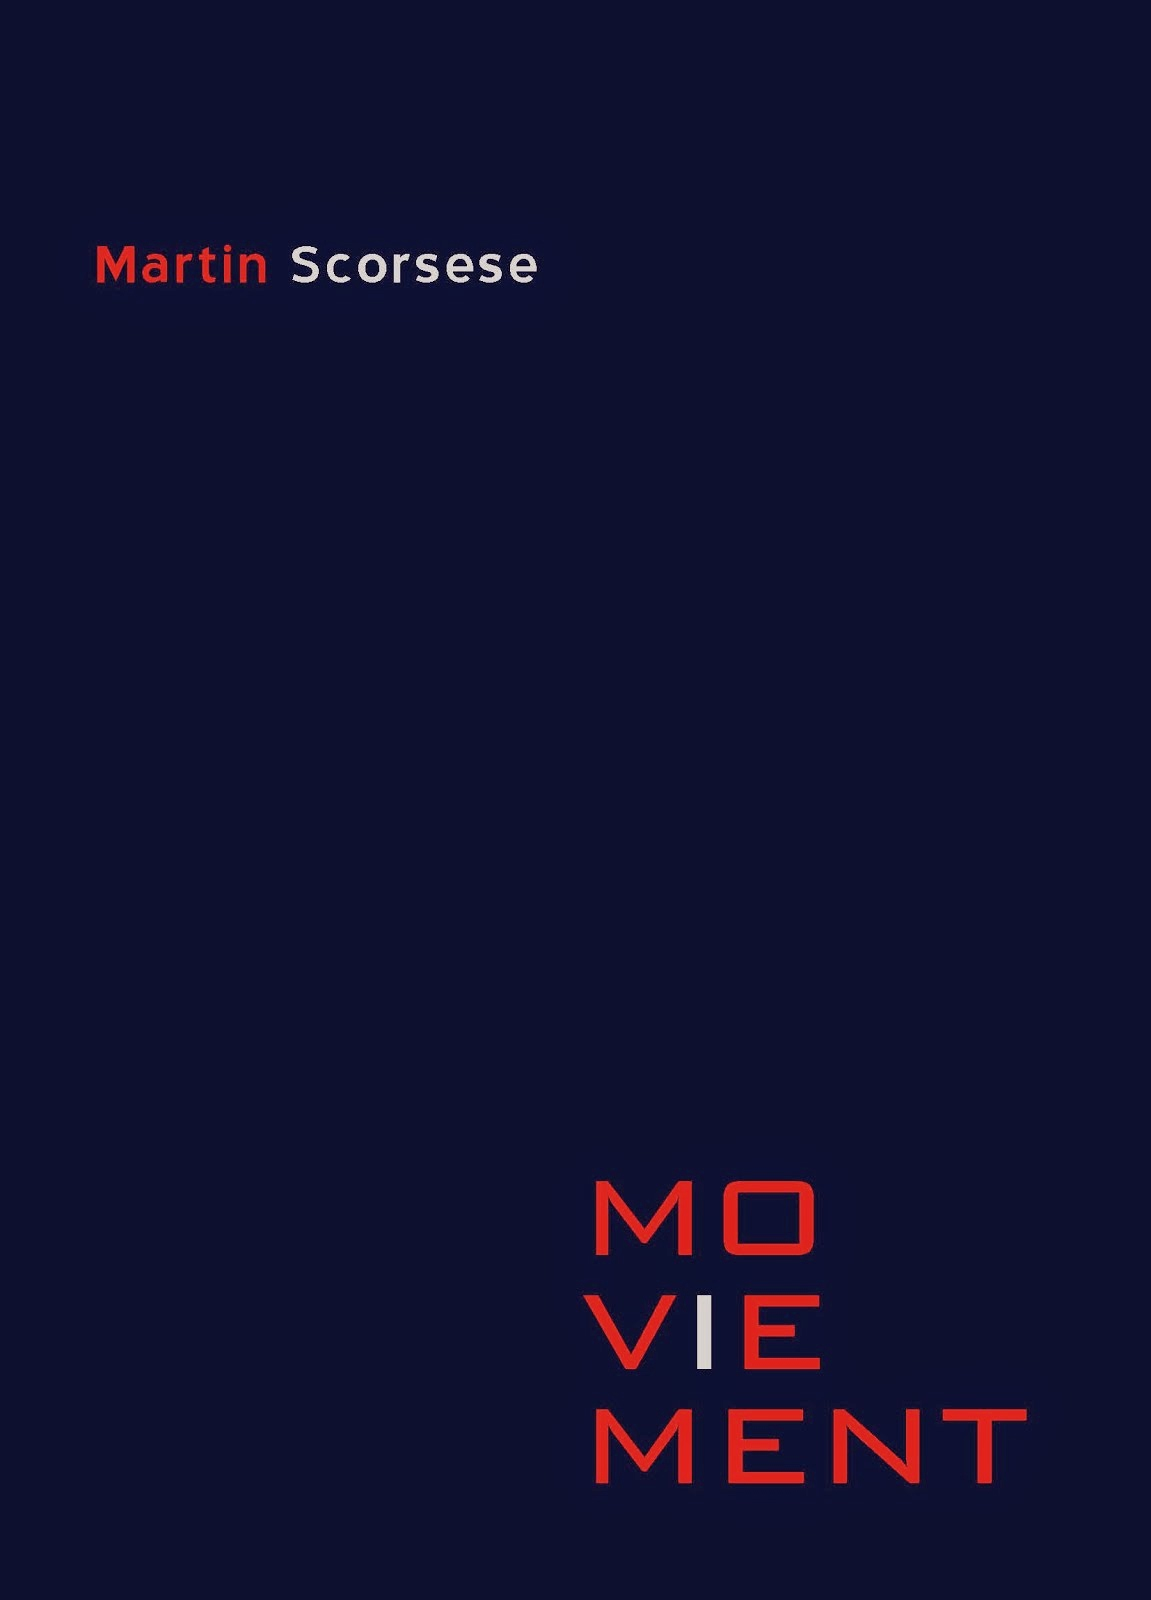 Moviement n°10 - Martin Scorsese